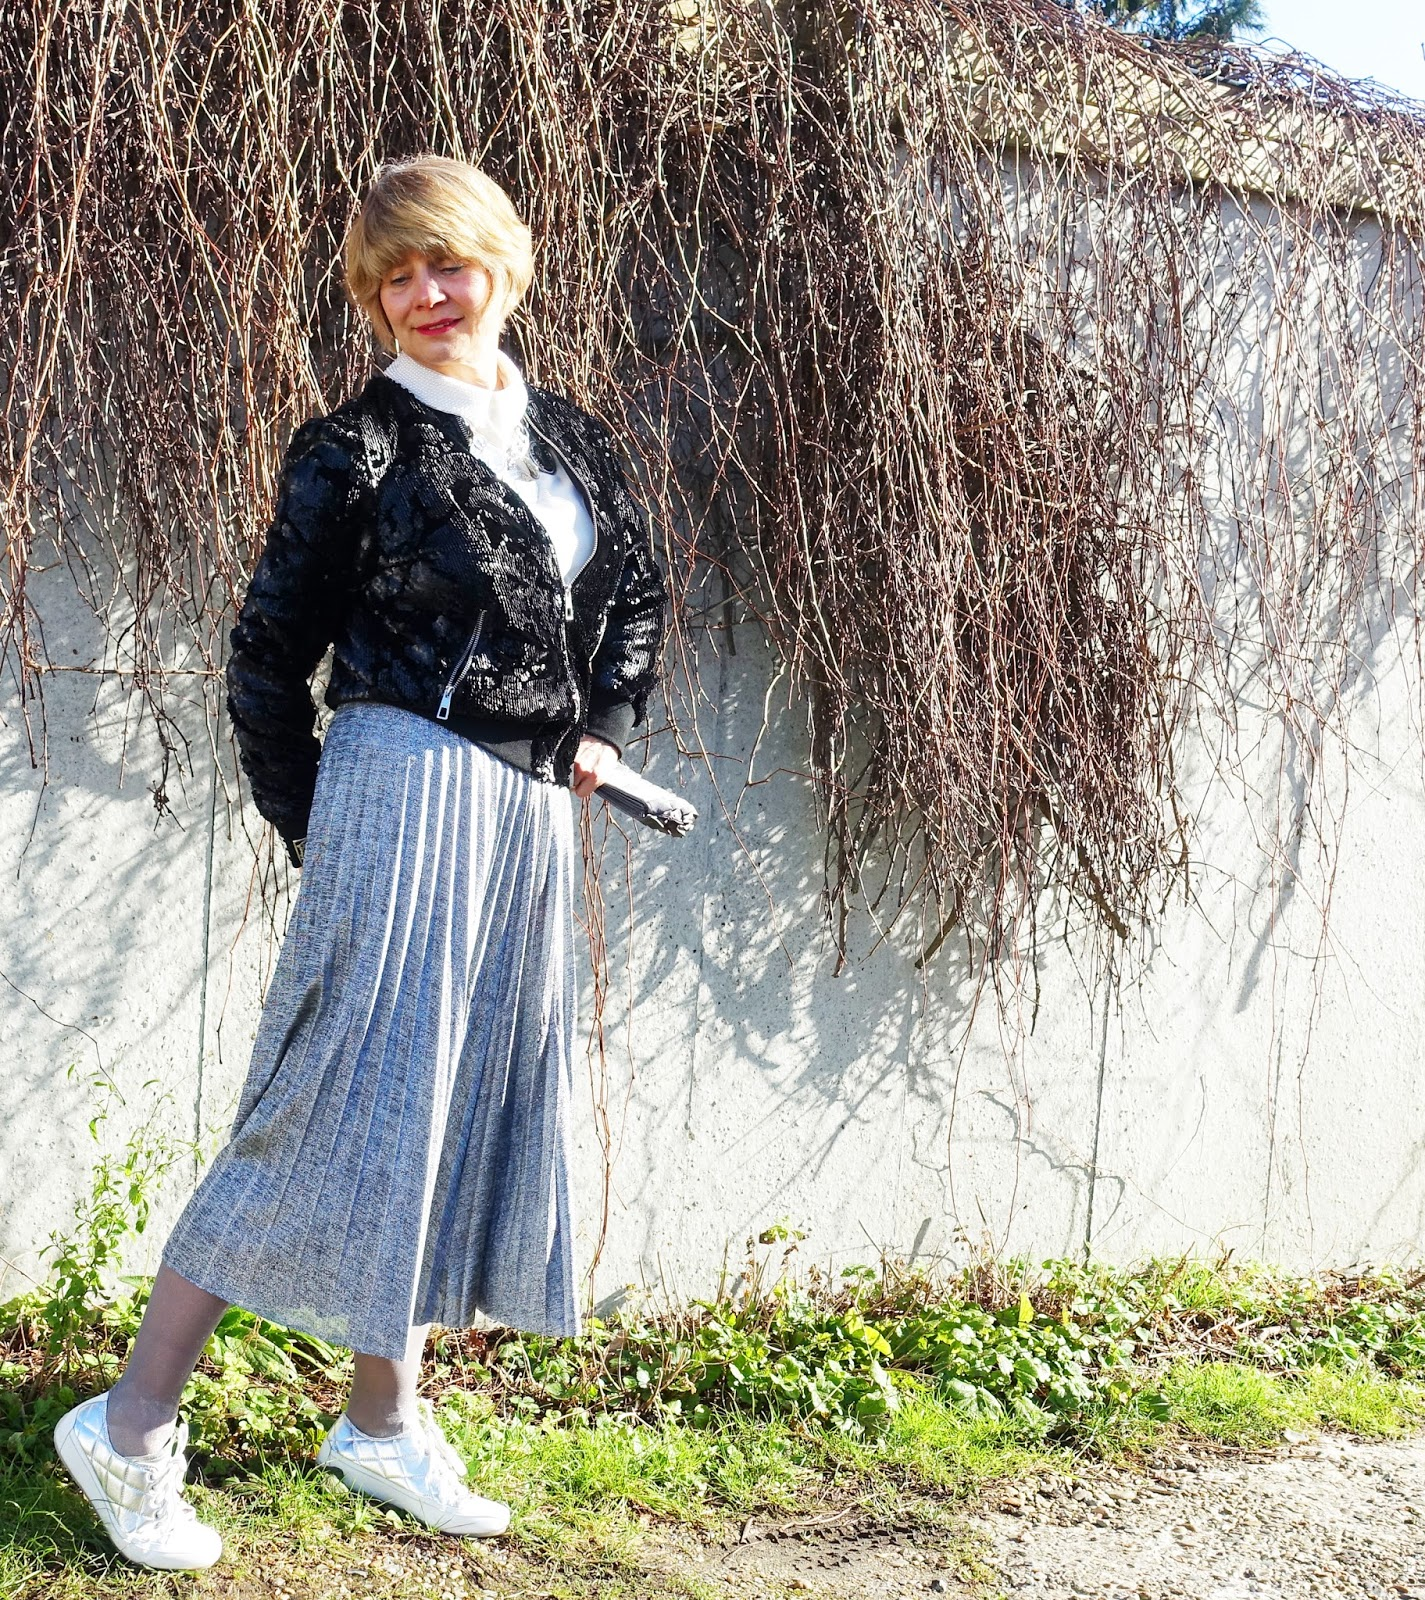 Gail Hanlon from mid life fashion blog Is This Mutton in silver pleated skirt, black sequinned bomber jacket, silver Vionic shoes